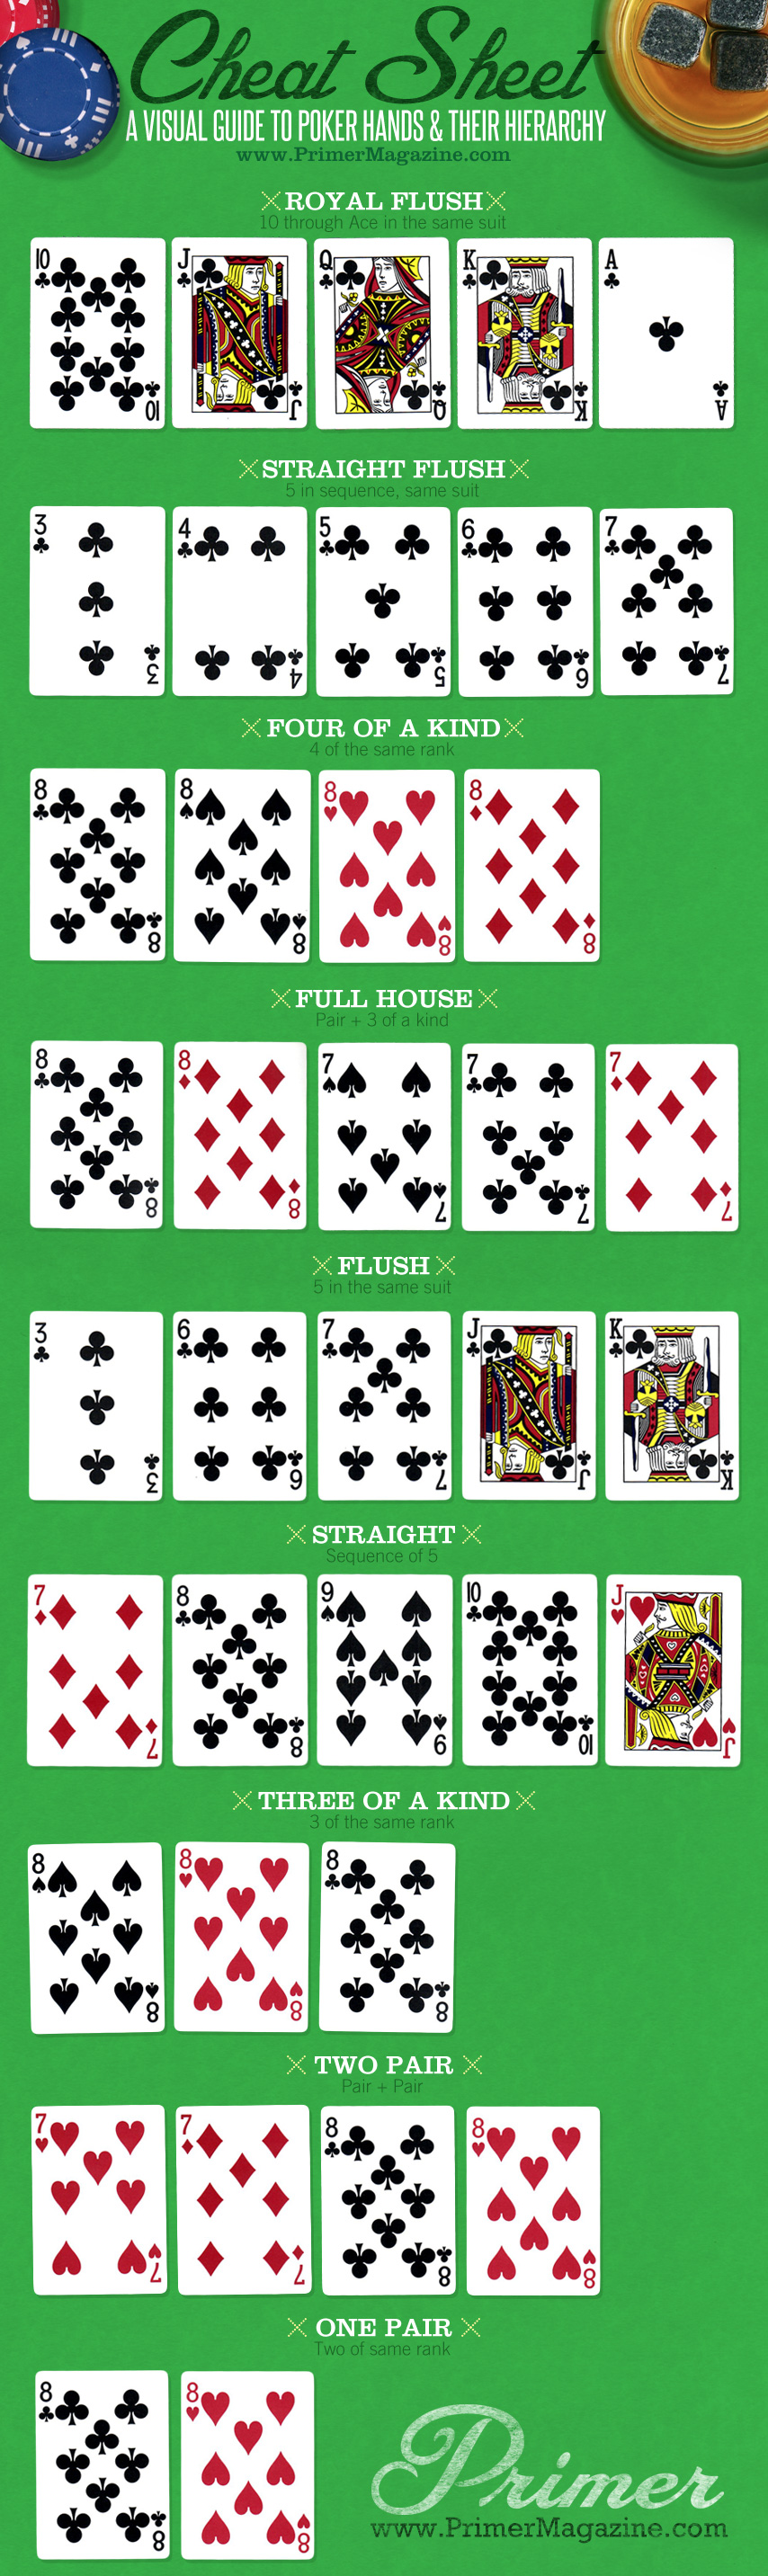 Poker hand descriptions infographic